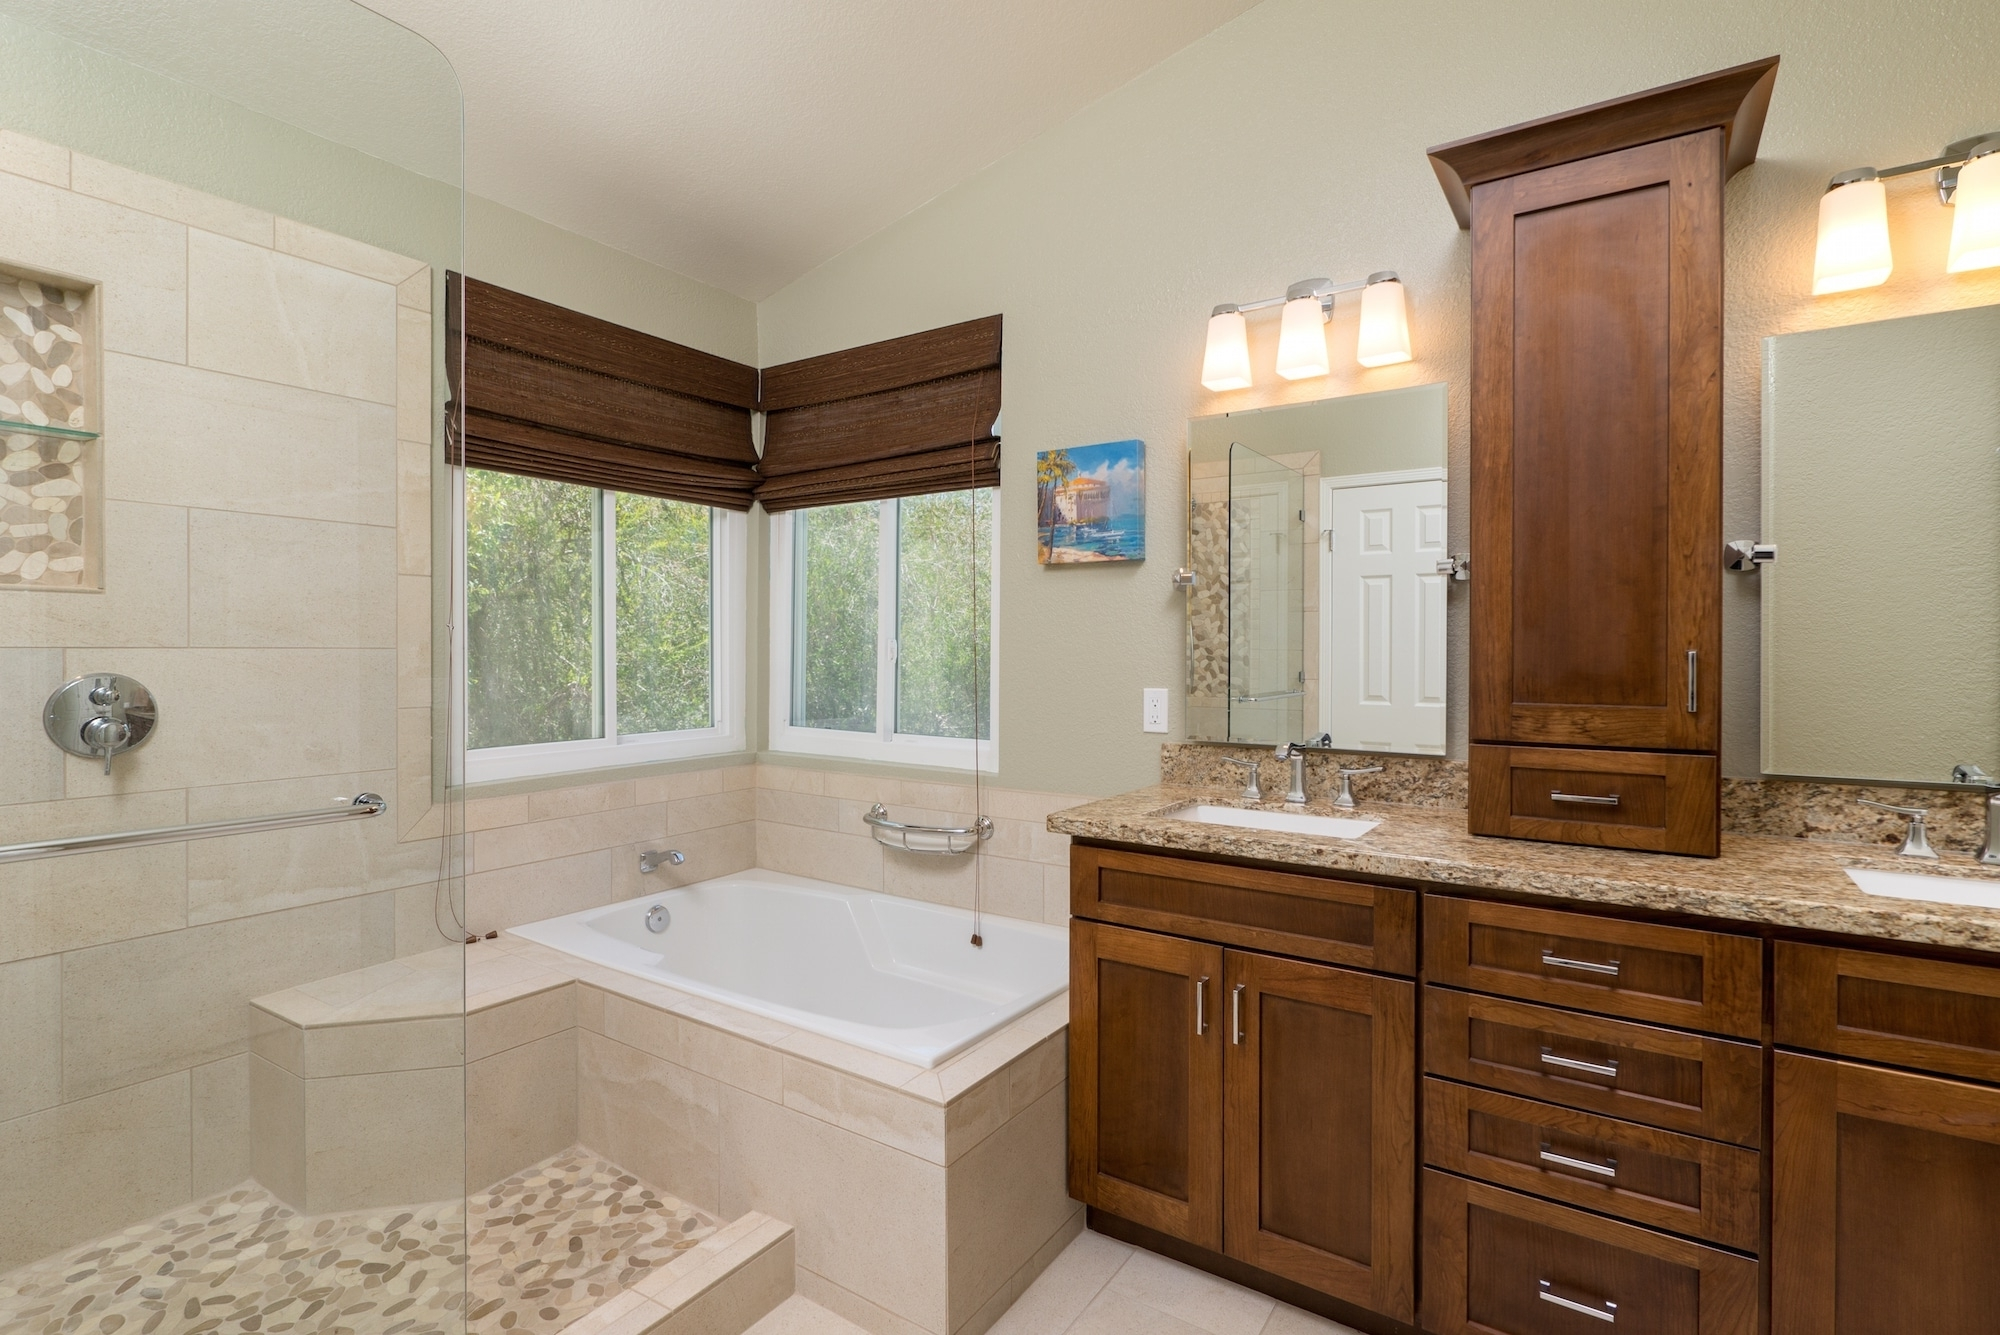 Bathroom Remodeling – Planning And Hiring | Angie's List Intended For Cheap Ways To Improve Your Bathroom (View 2 of 33)